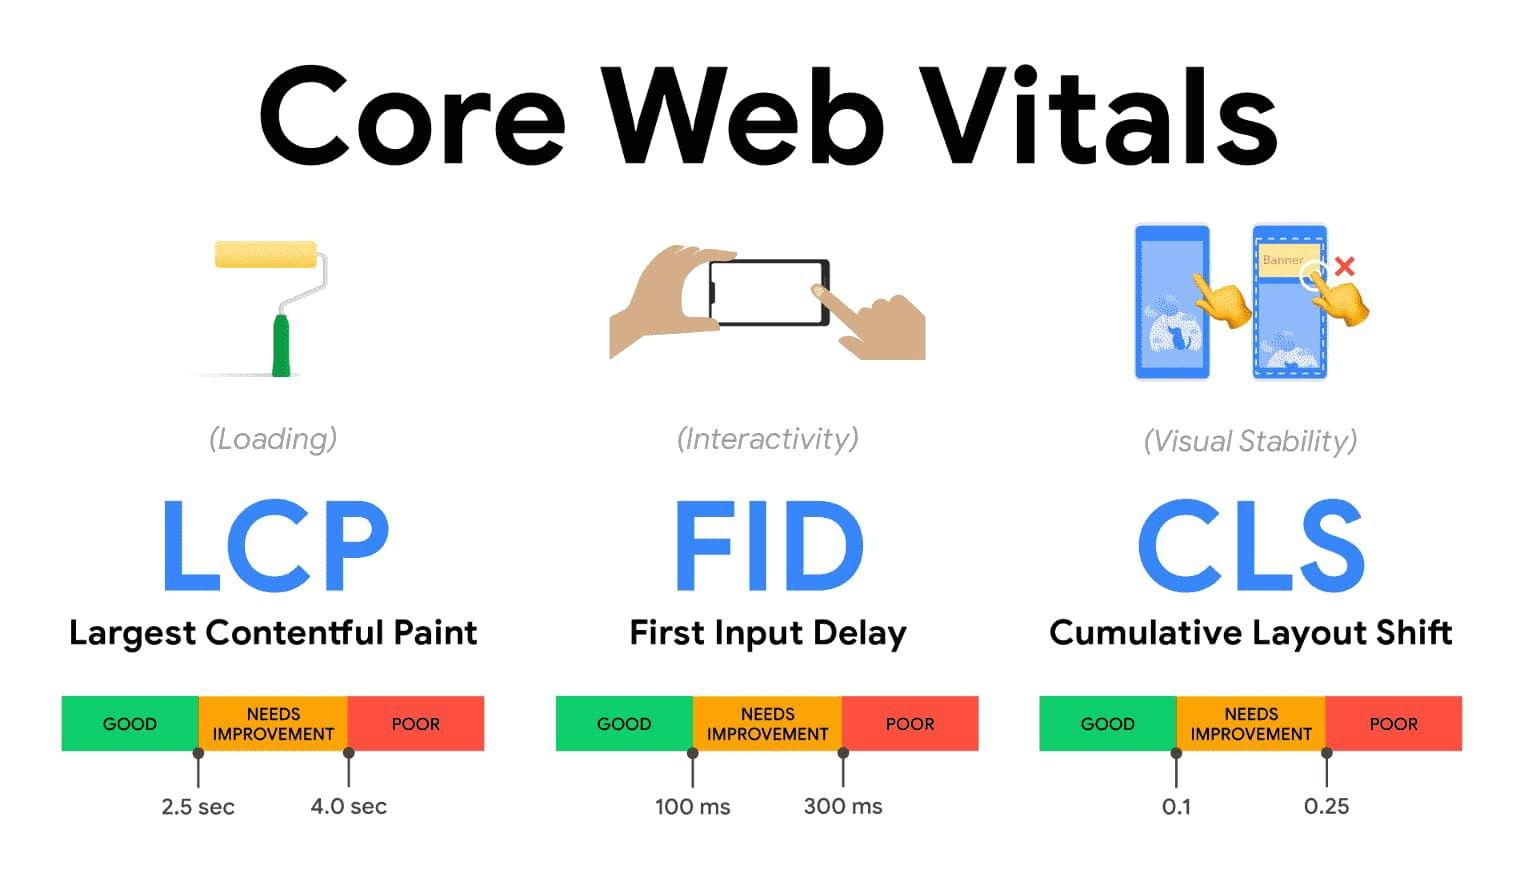 Core web vitals: largest contentful paint, first input delay, and cumulative layout shift are shown, each with a range of good, needs improvement, or poor